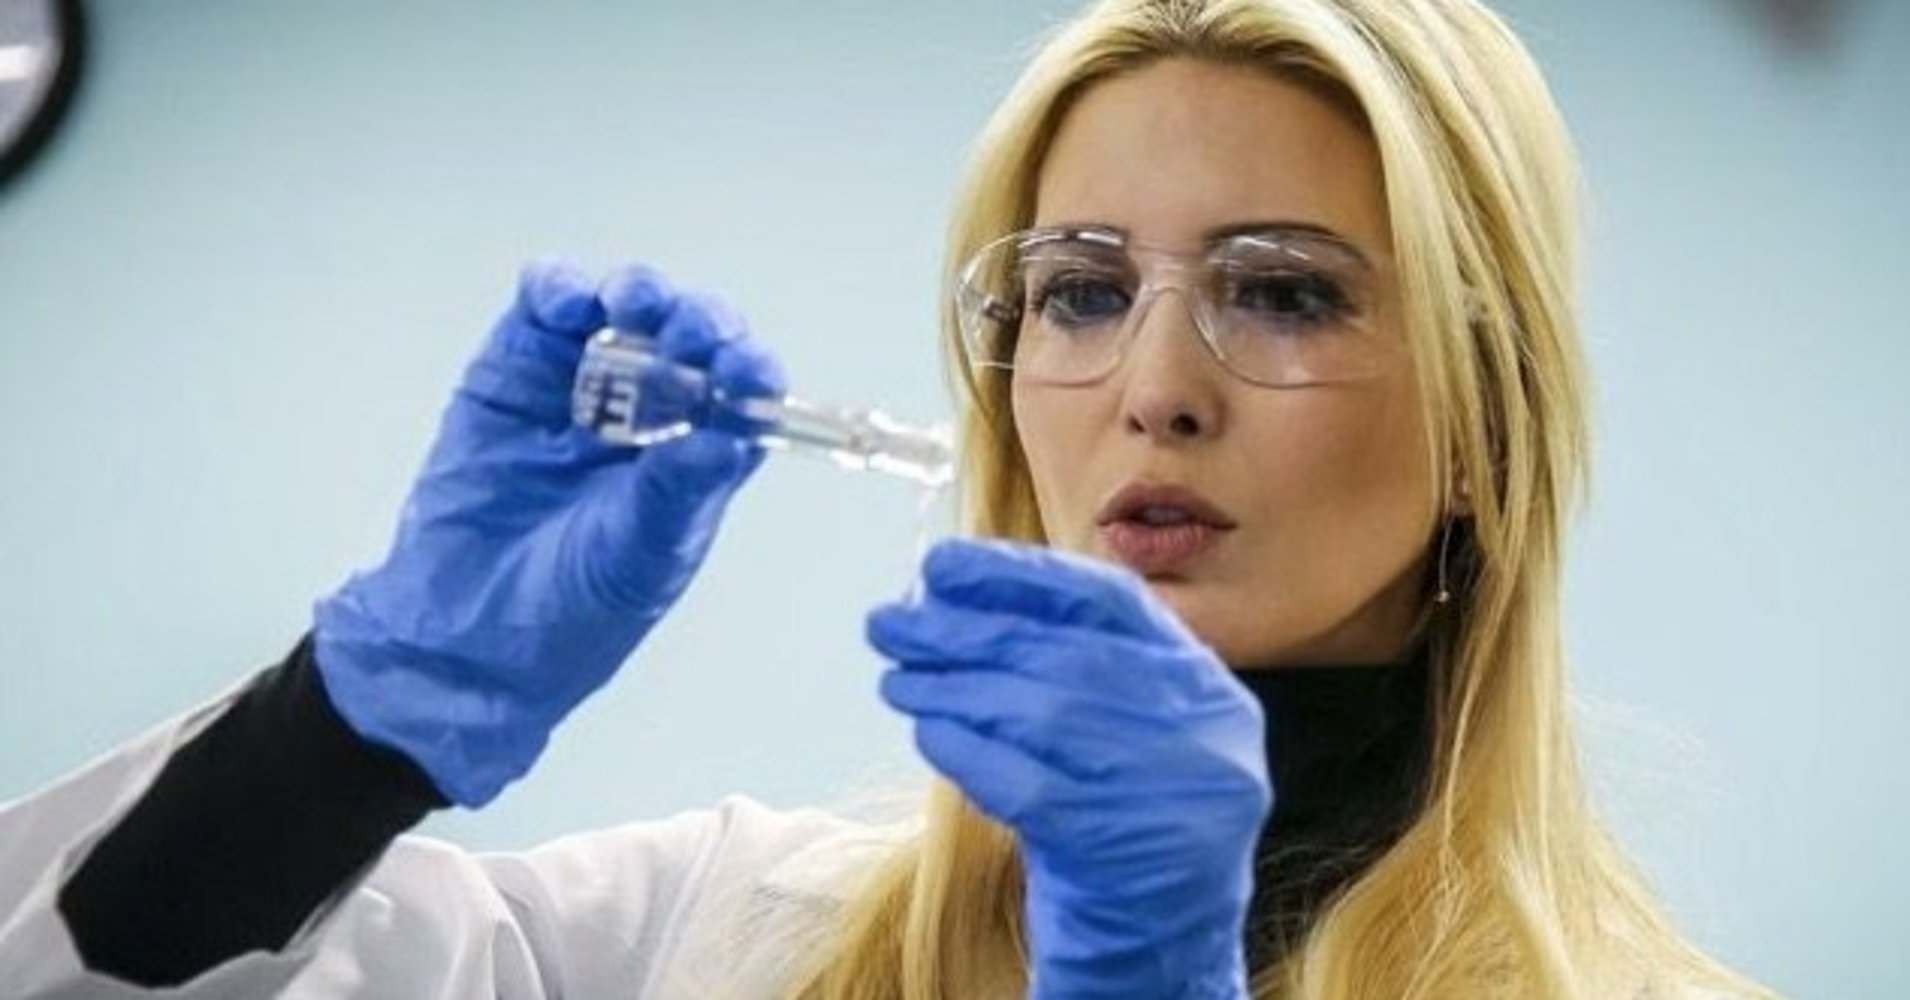 Ivanka Trump Called Out For Cosplaying As A Scientist In Latest Weird Photo Op